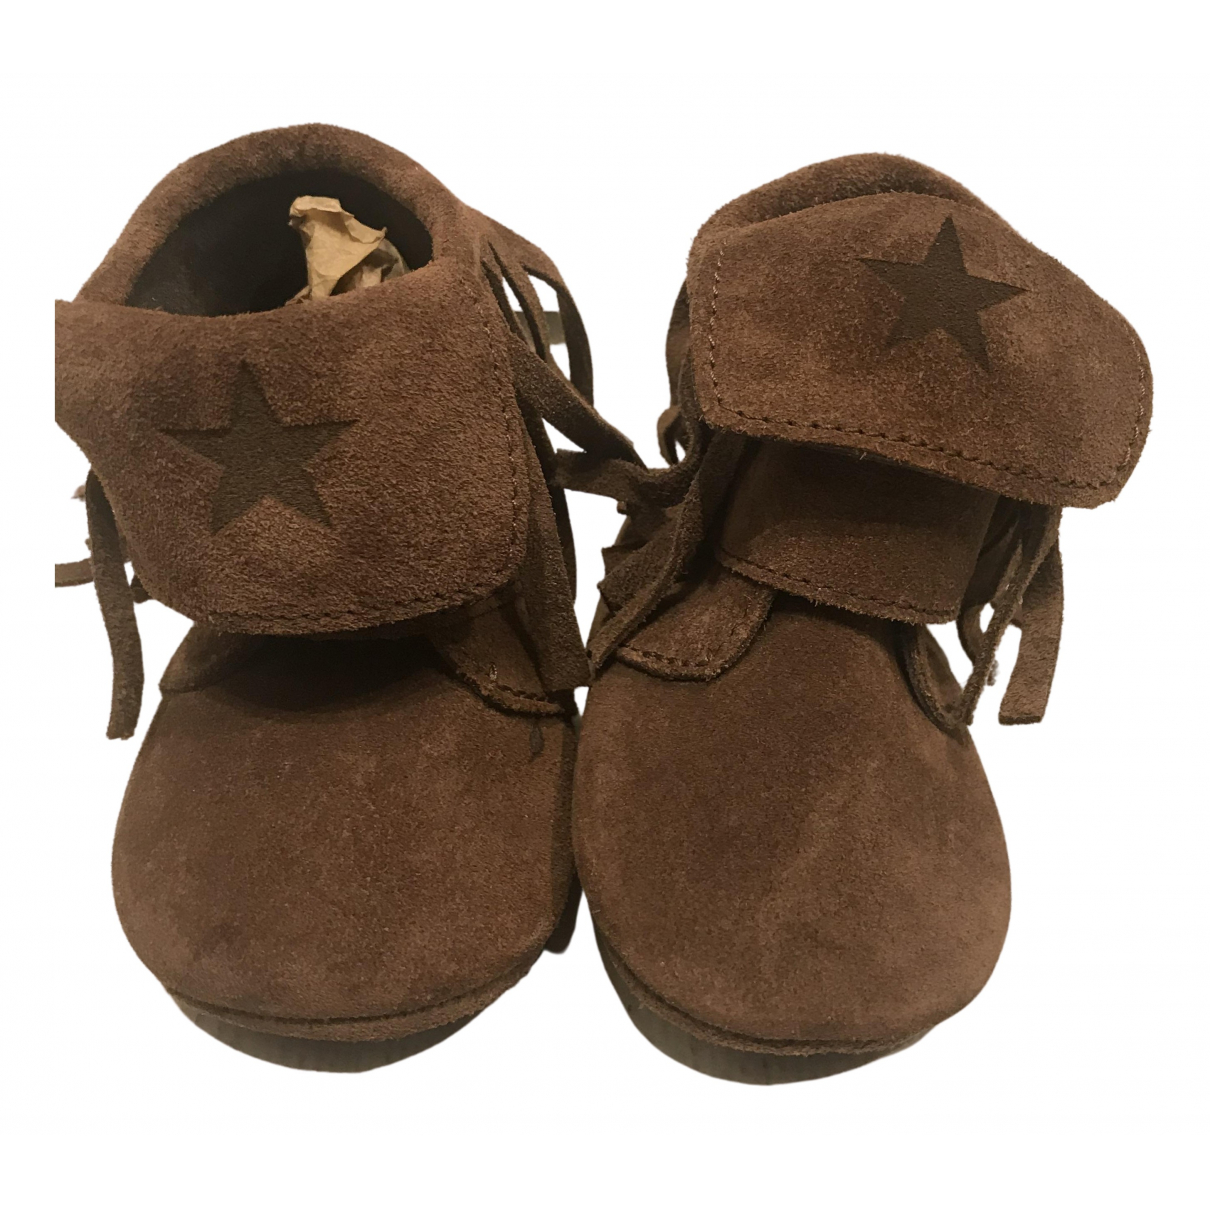 Tocoto Vintage N Brown Leather Slippers for Kids 18 FR